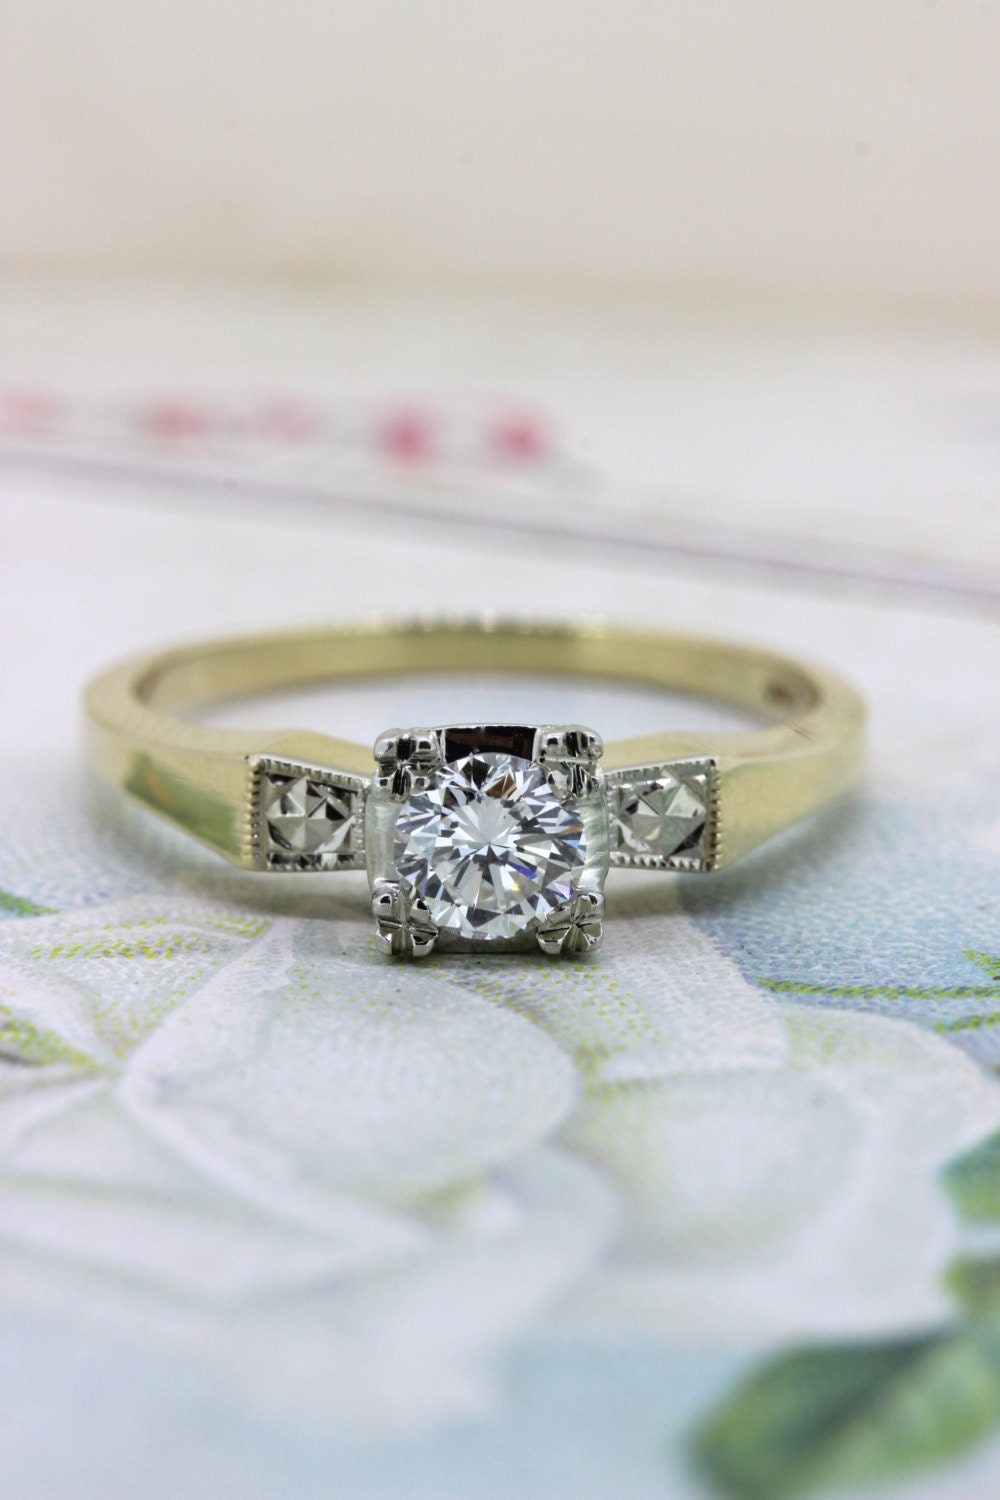 1940s vintage engagement ring dainty by fergusonsfinejewelry